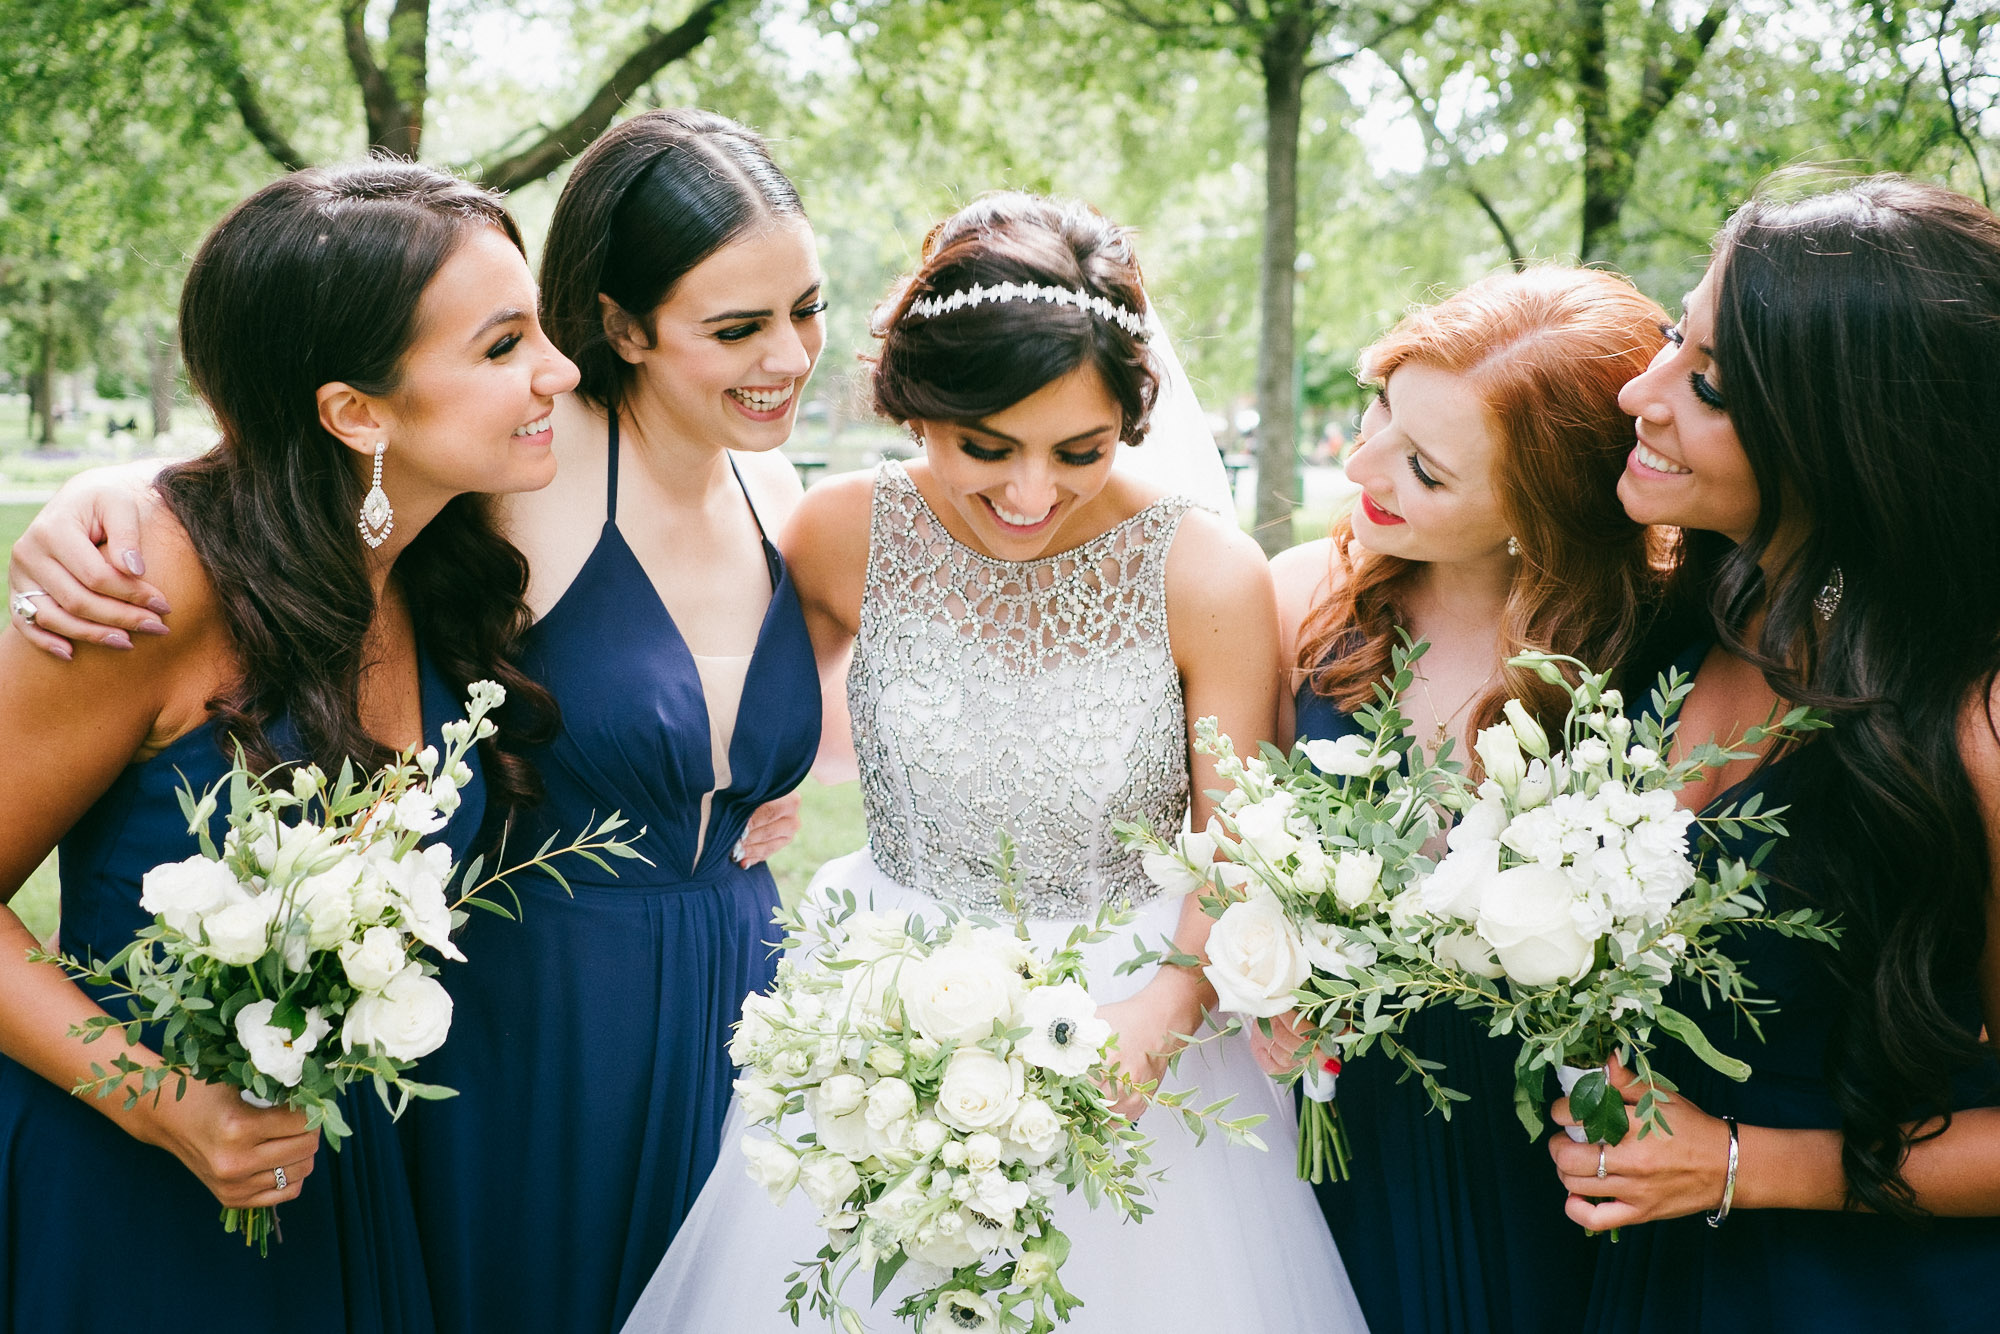 bridesmaids-and-bride-after-ceremony-montreal-wedding-photographer-alex-tran